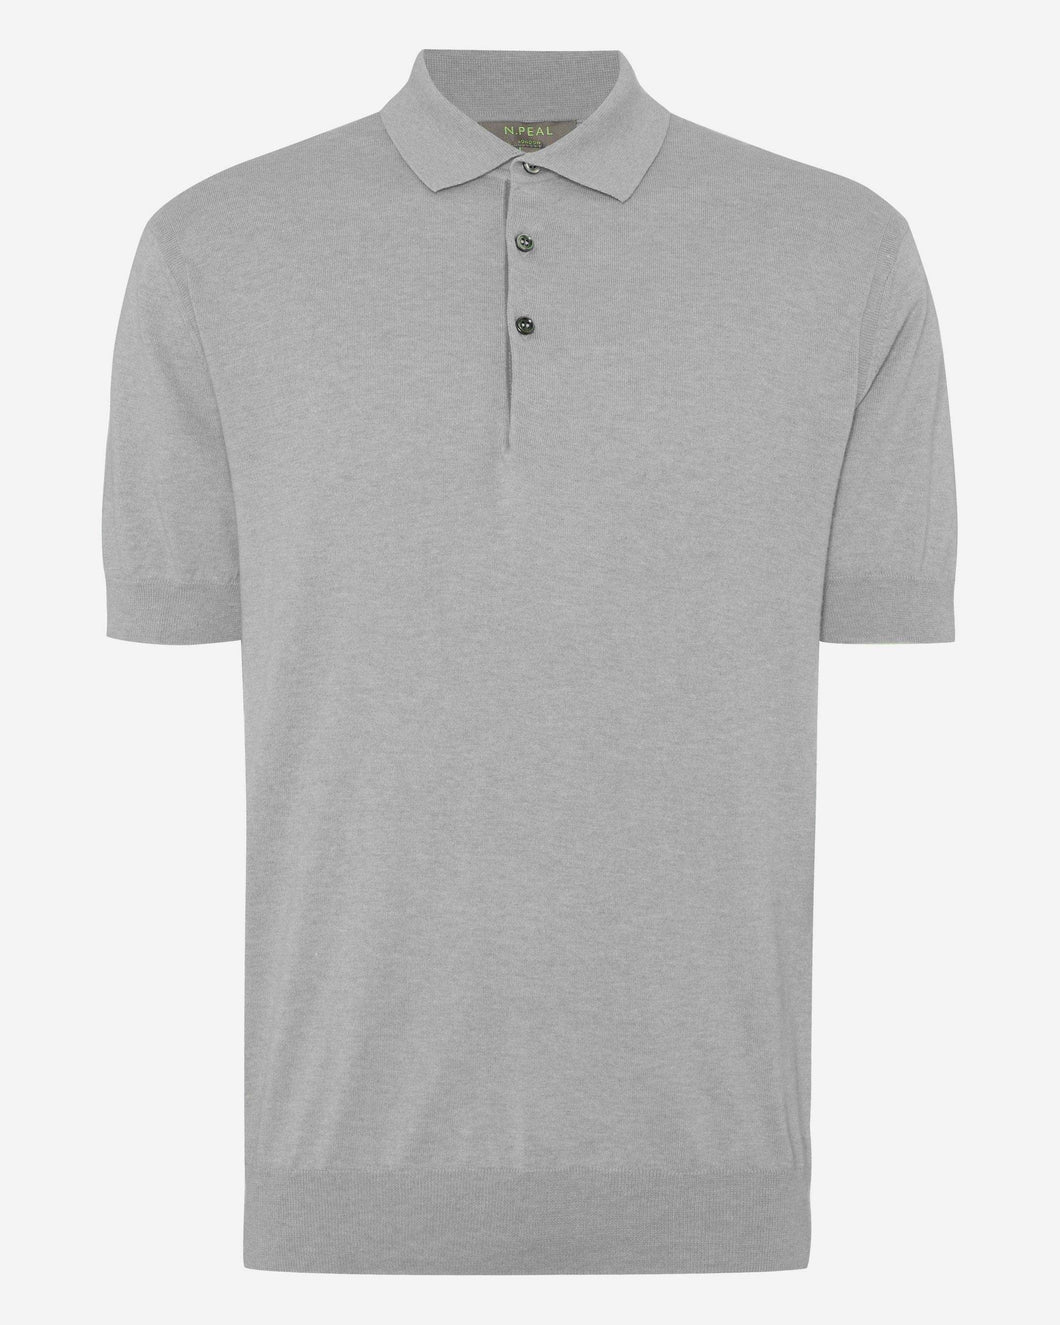 Short Sleeve Collared Polo T Shirt Fumo Grey